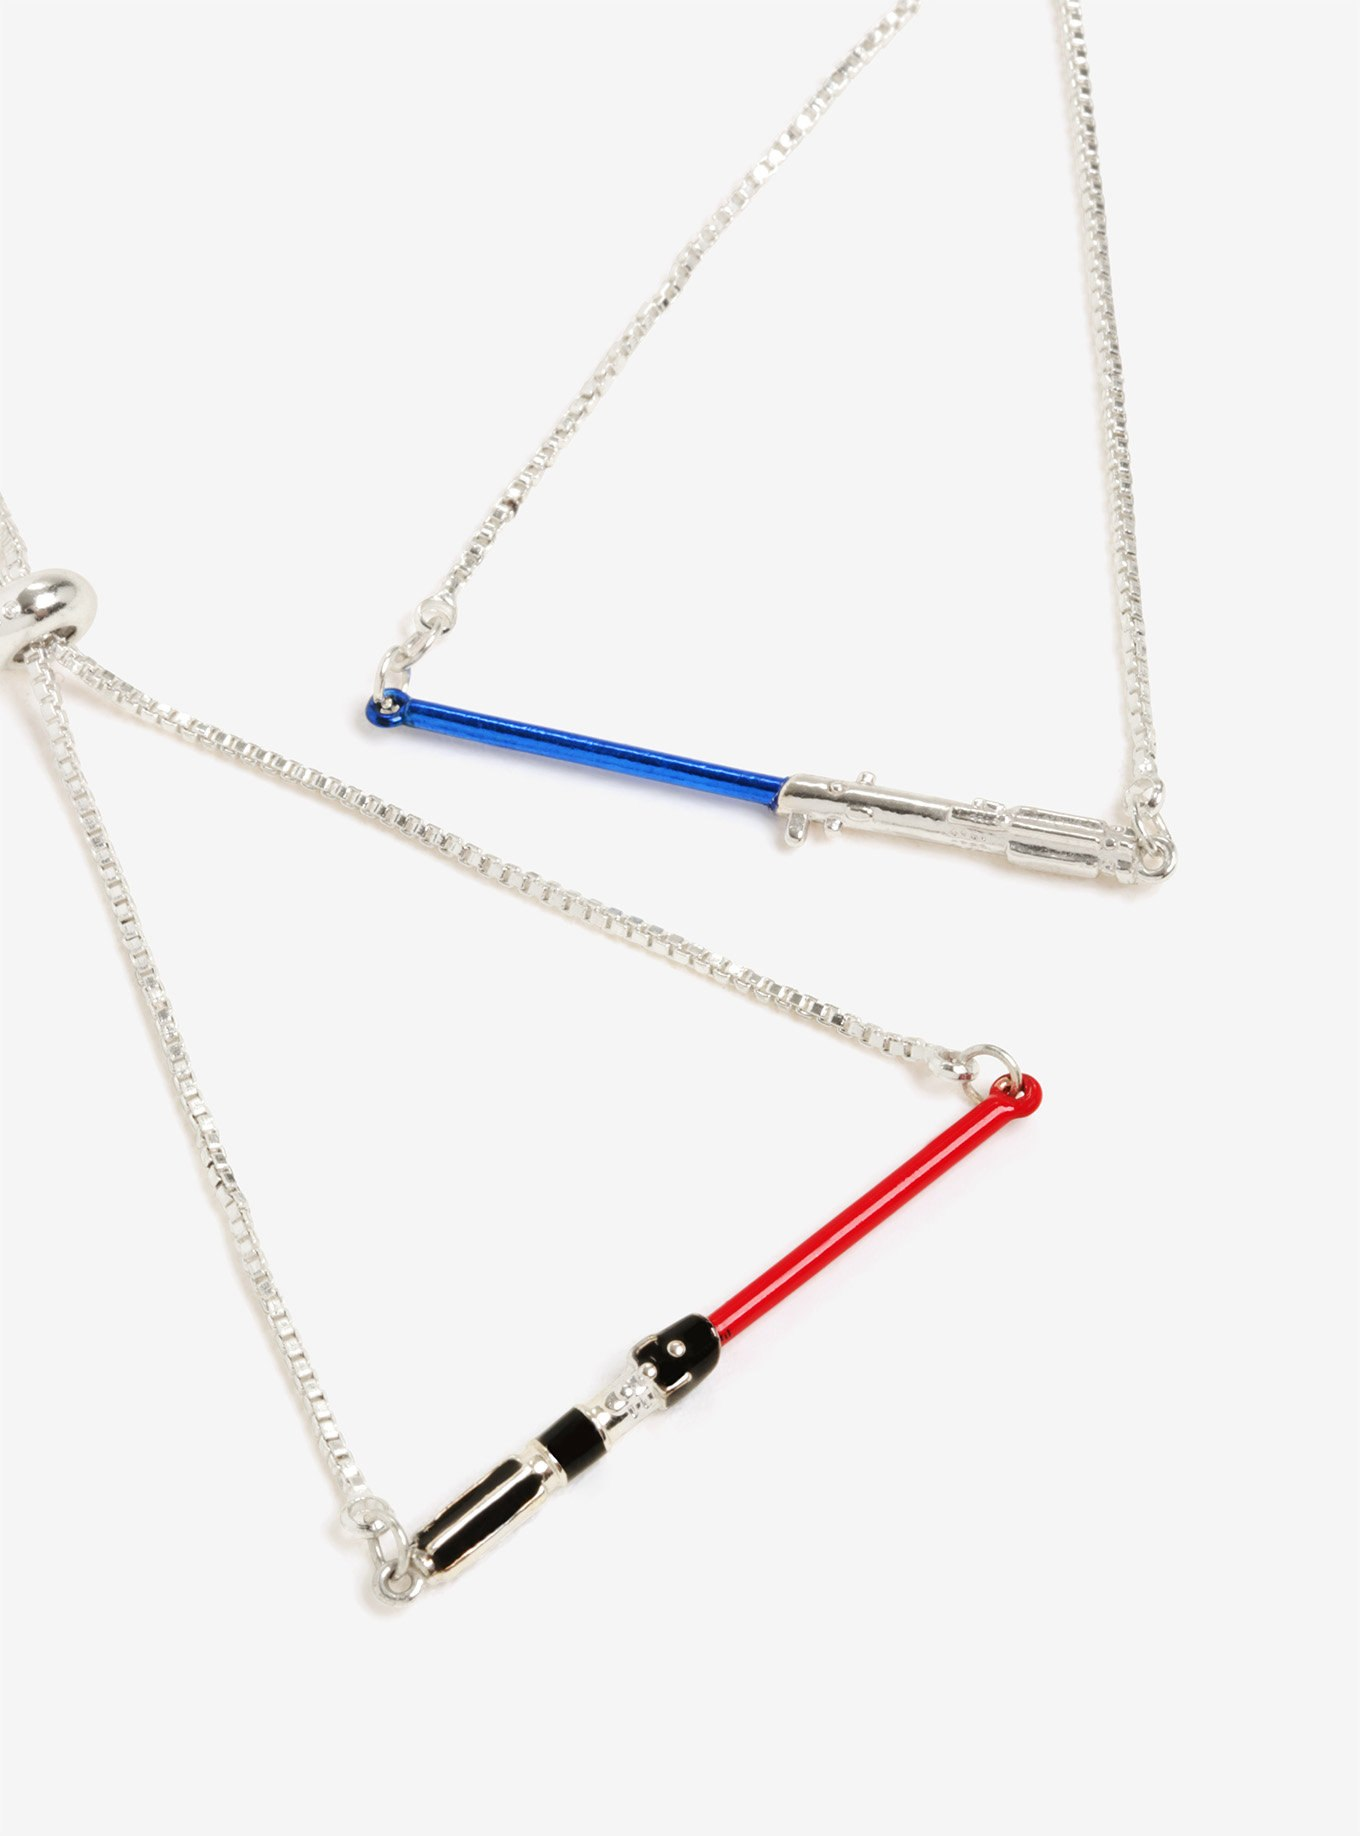 Star Wars Lightsaber Bracelet Set at Box Lunch